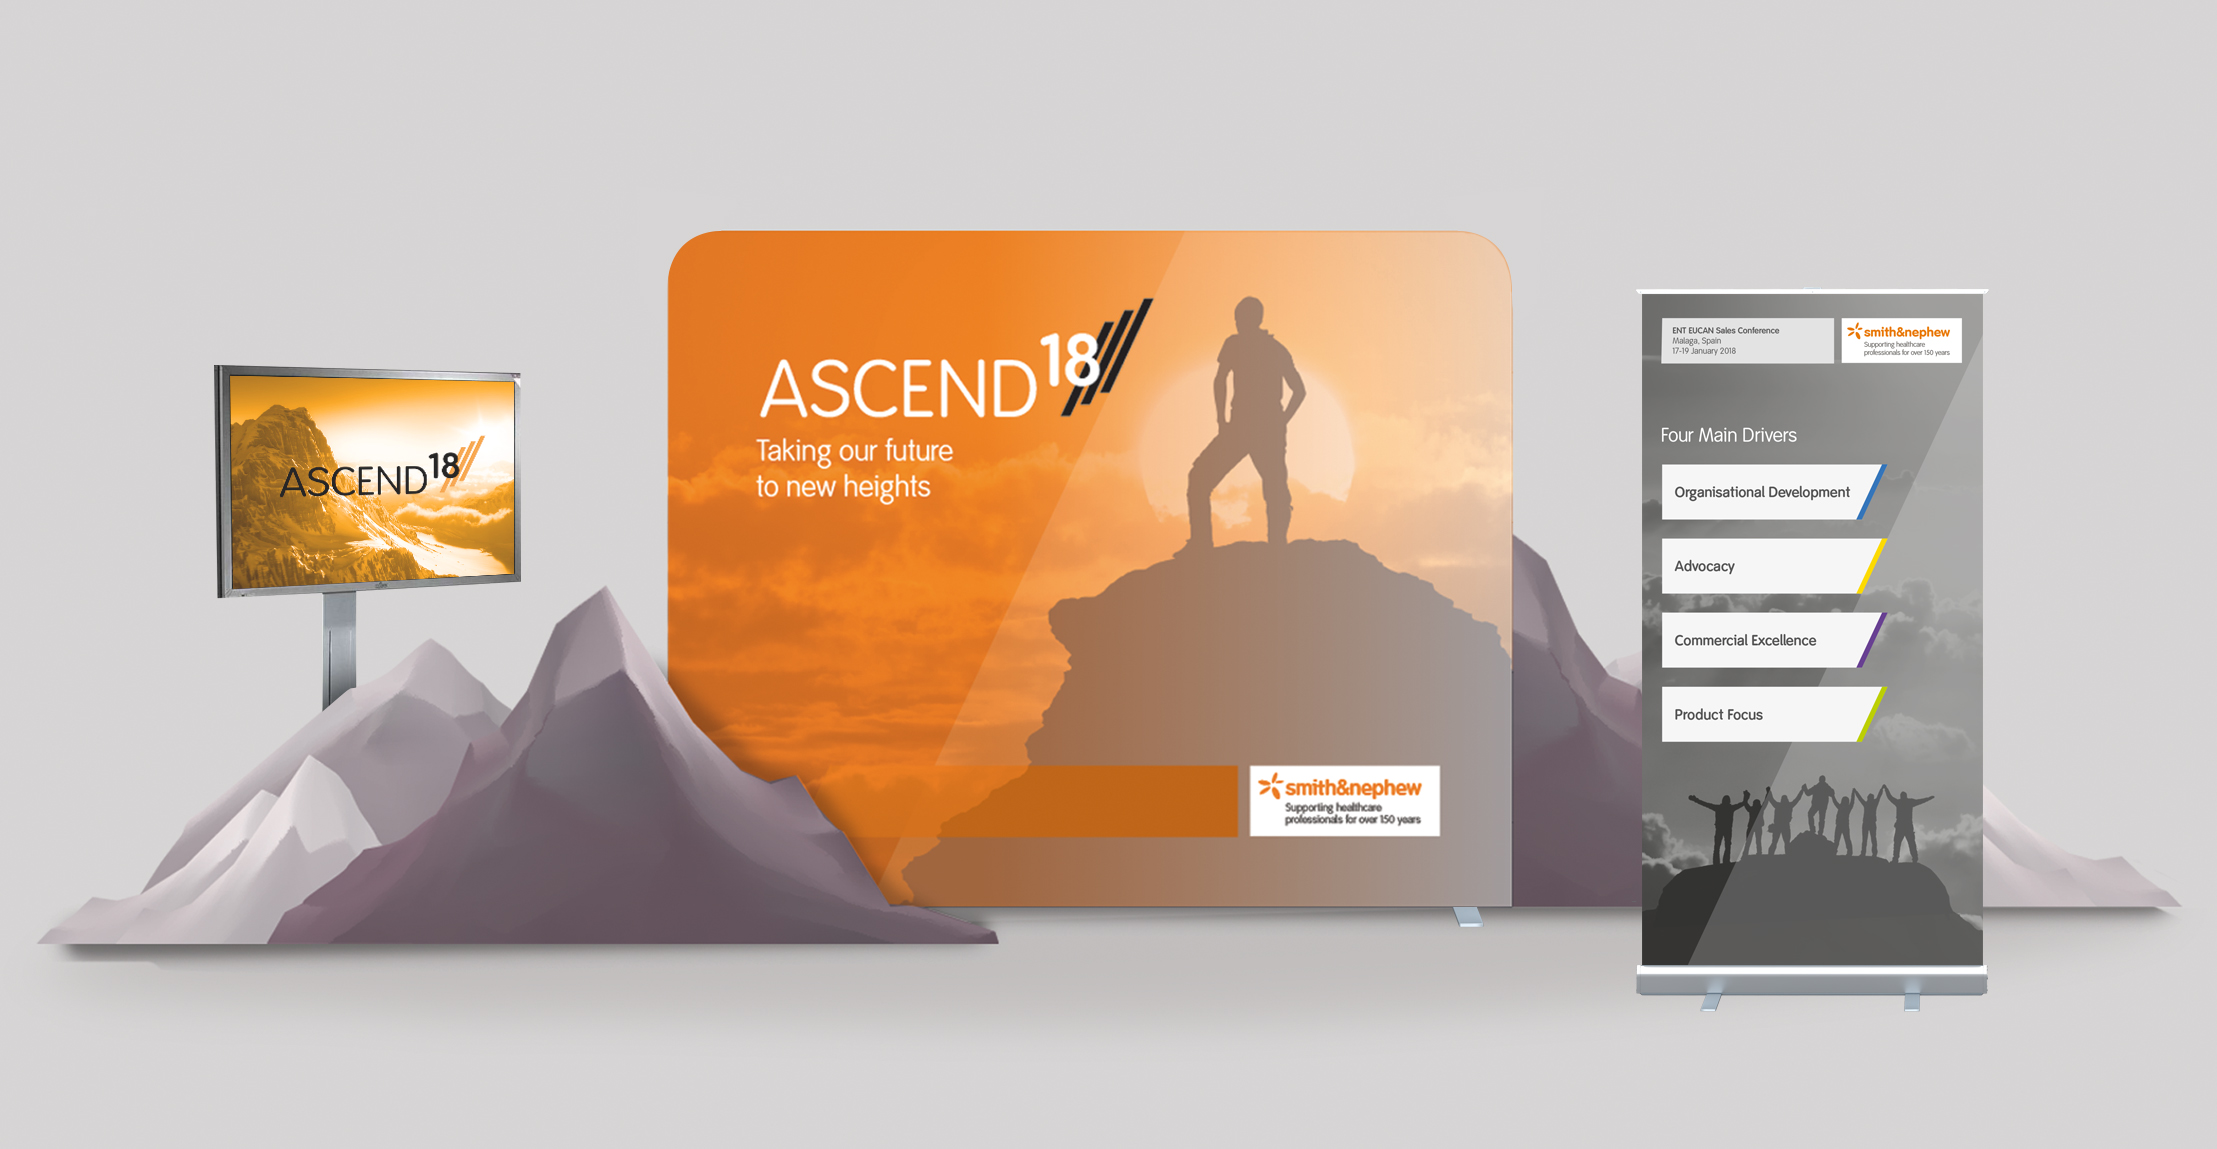 Smith & Nephew Ascend Project, exhibition design